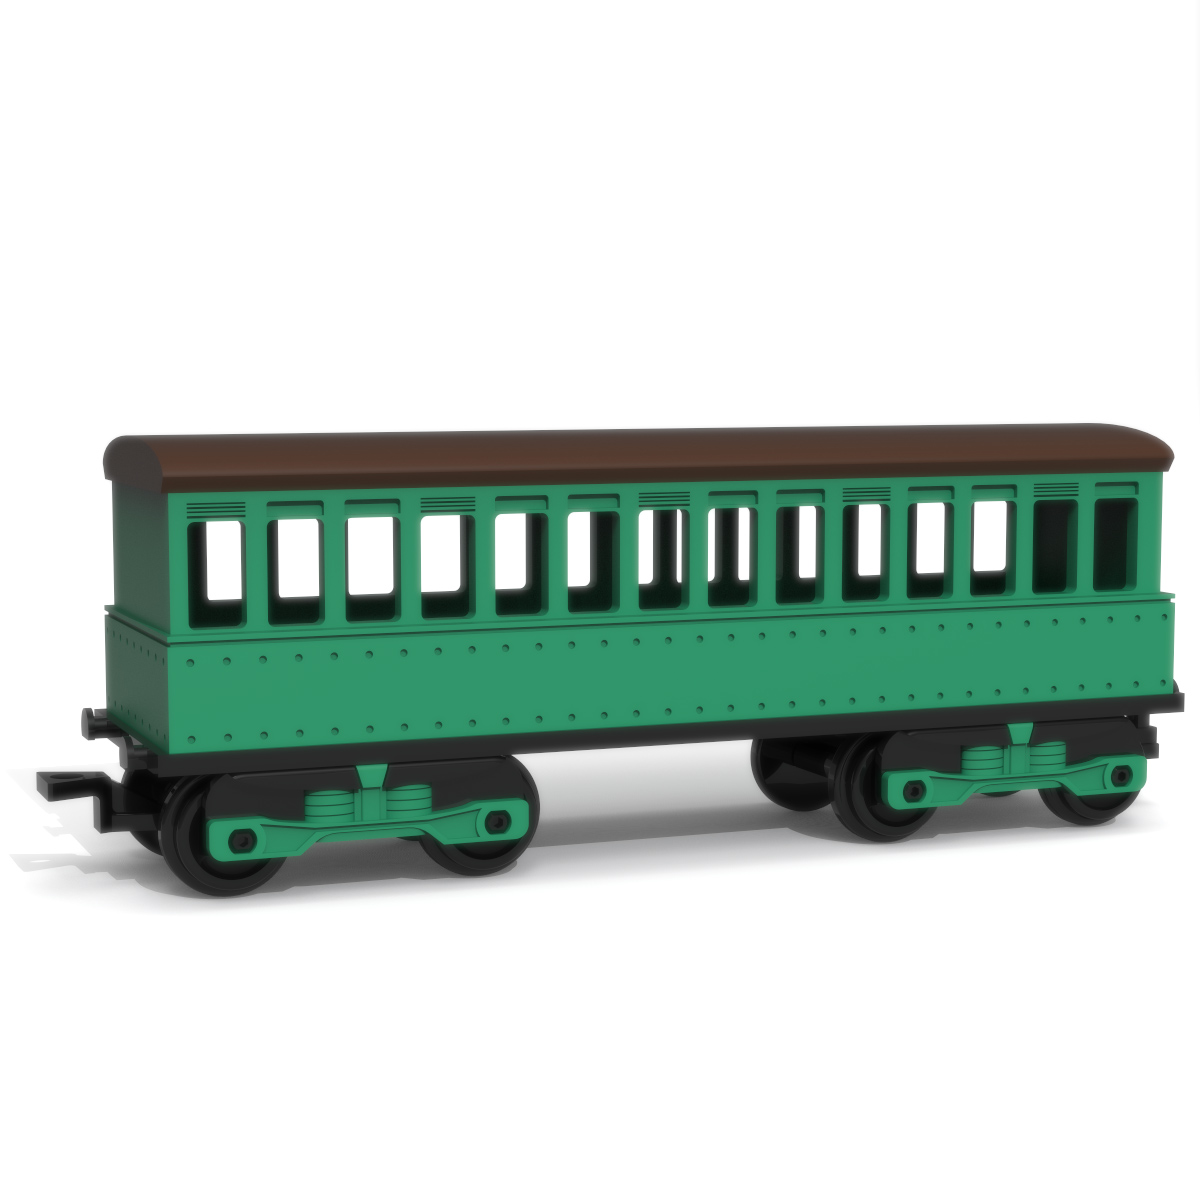 Passenger Wagon, 3D Printer Models